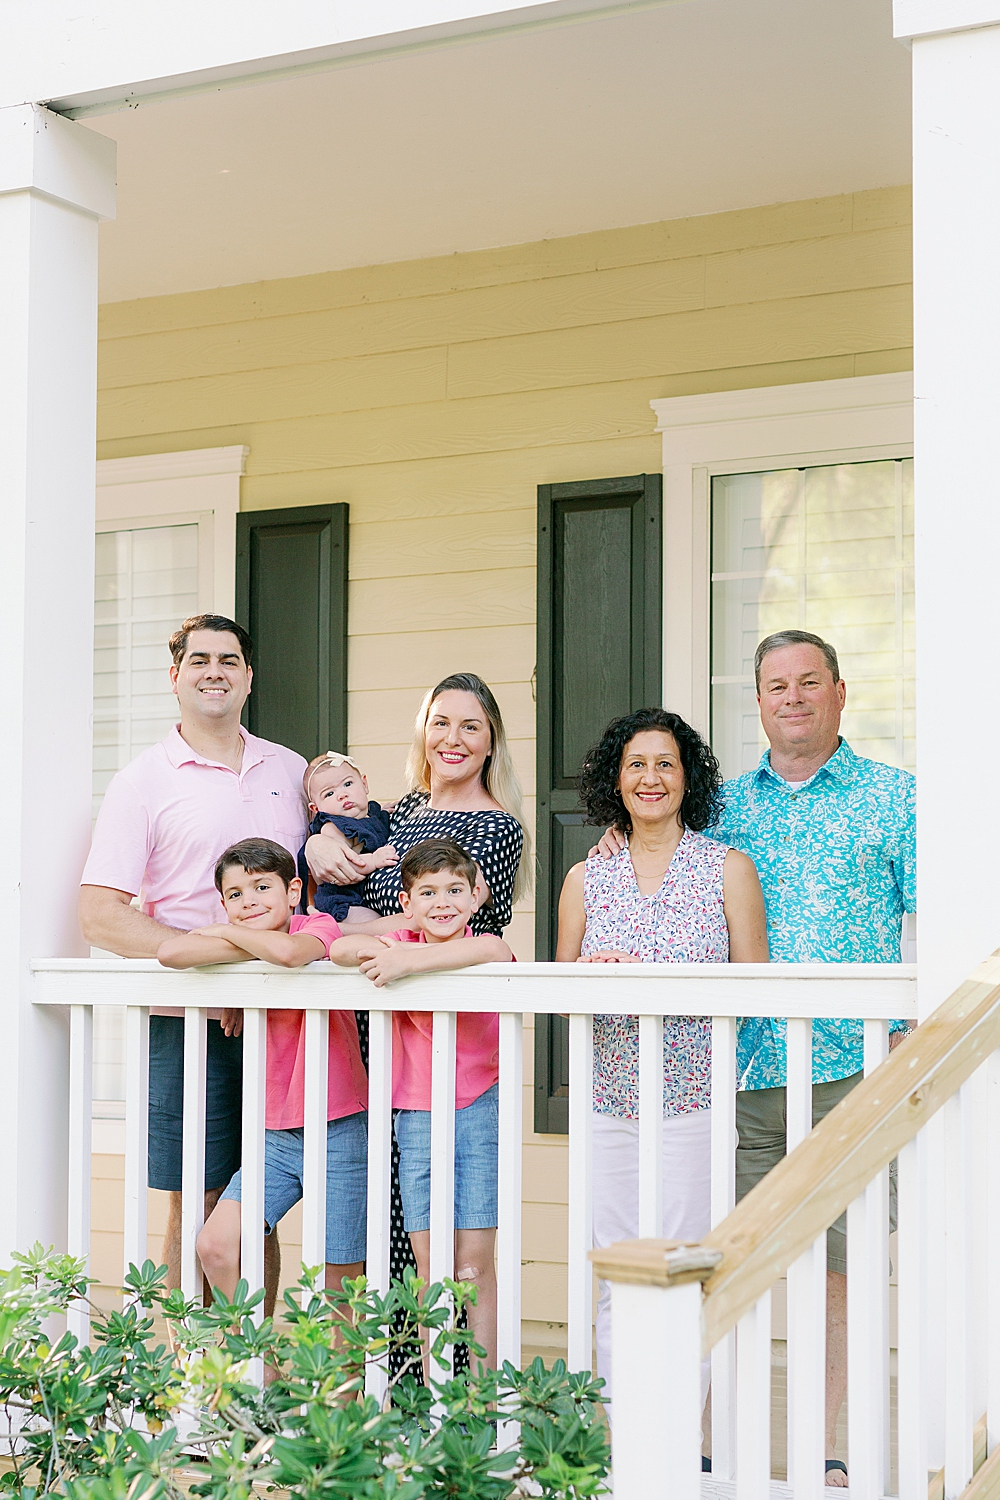 Extended family stands on their home porch and smiles at the camera